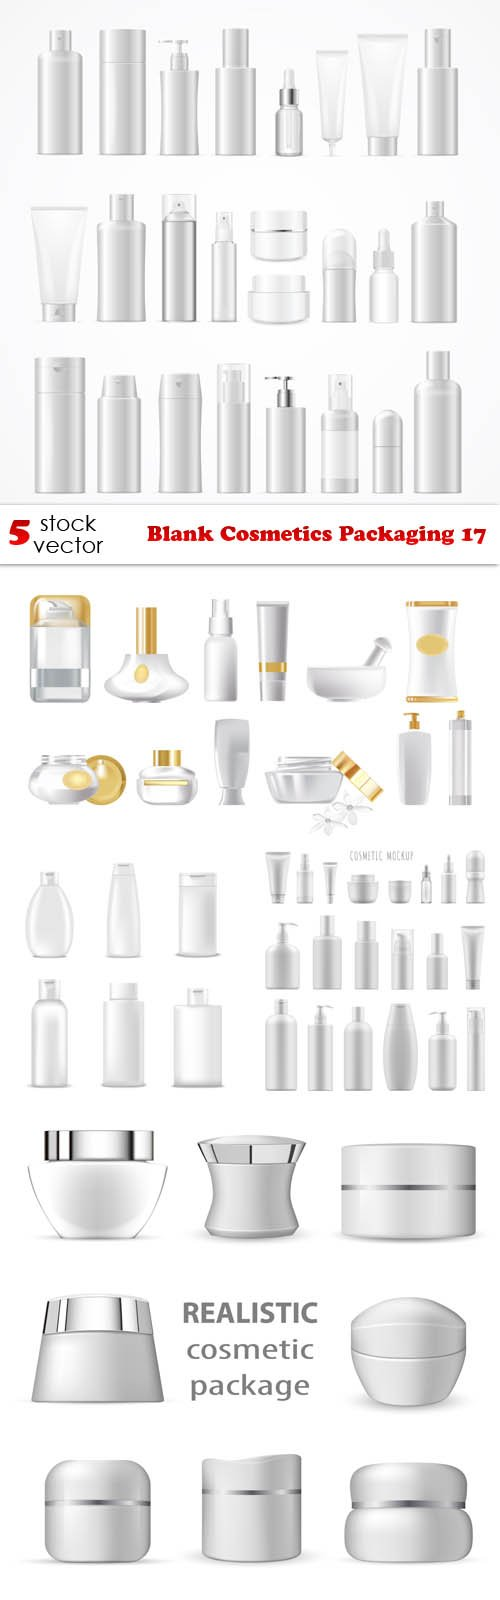 Vectors - Blank Cosmetics Packaging 17